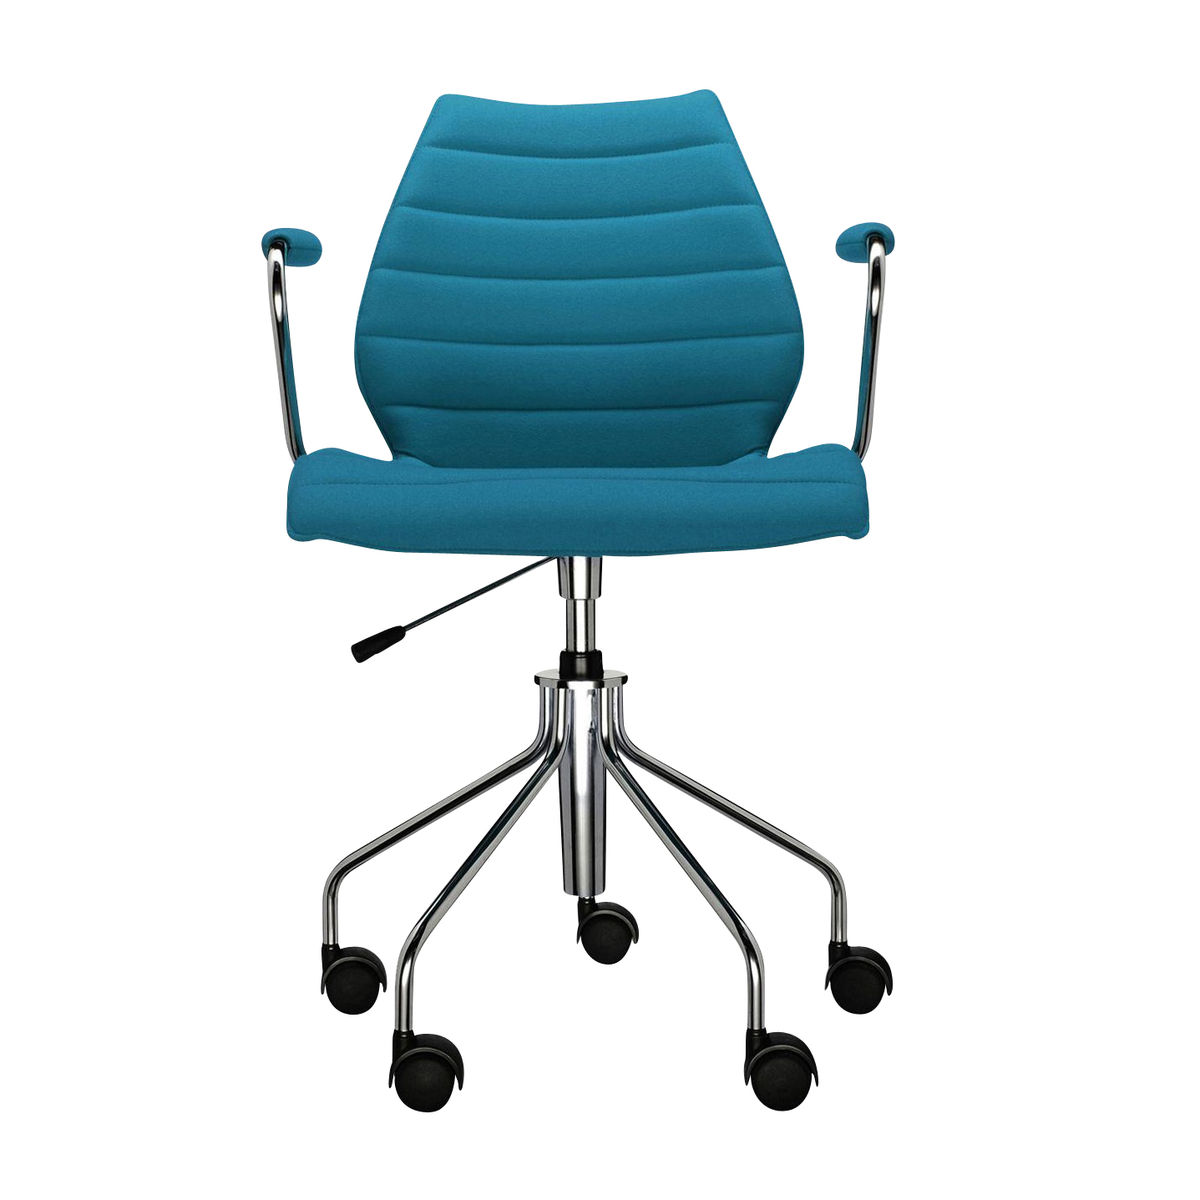 Teal office chair - Kartell Maui Soft Office Chair With Armrests Petrol Blue Fabric Trevira Adjustable